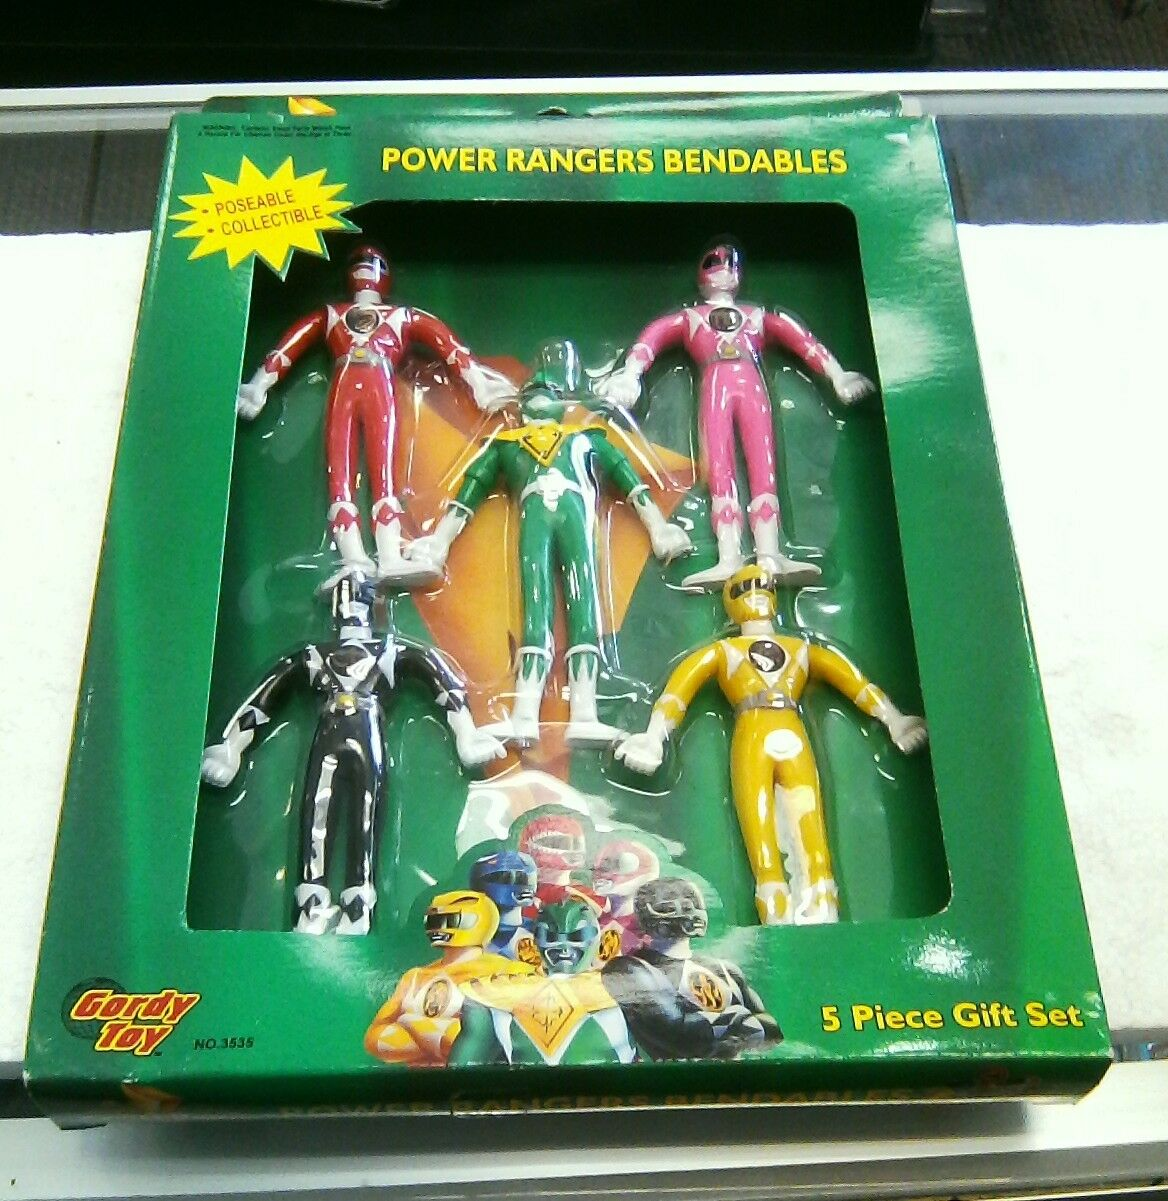 1993 5 Power Rangers Bendable 5 1993 piece gift set 44ec59